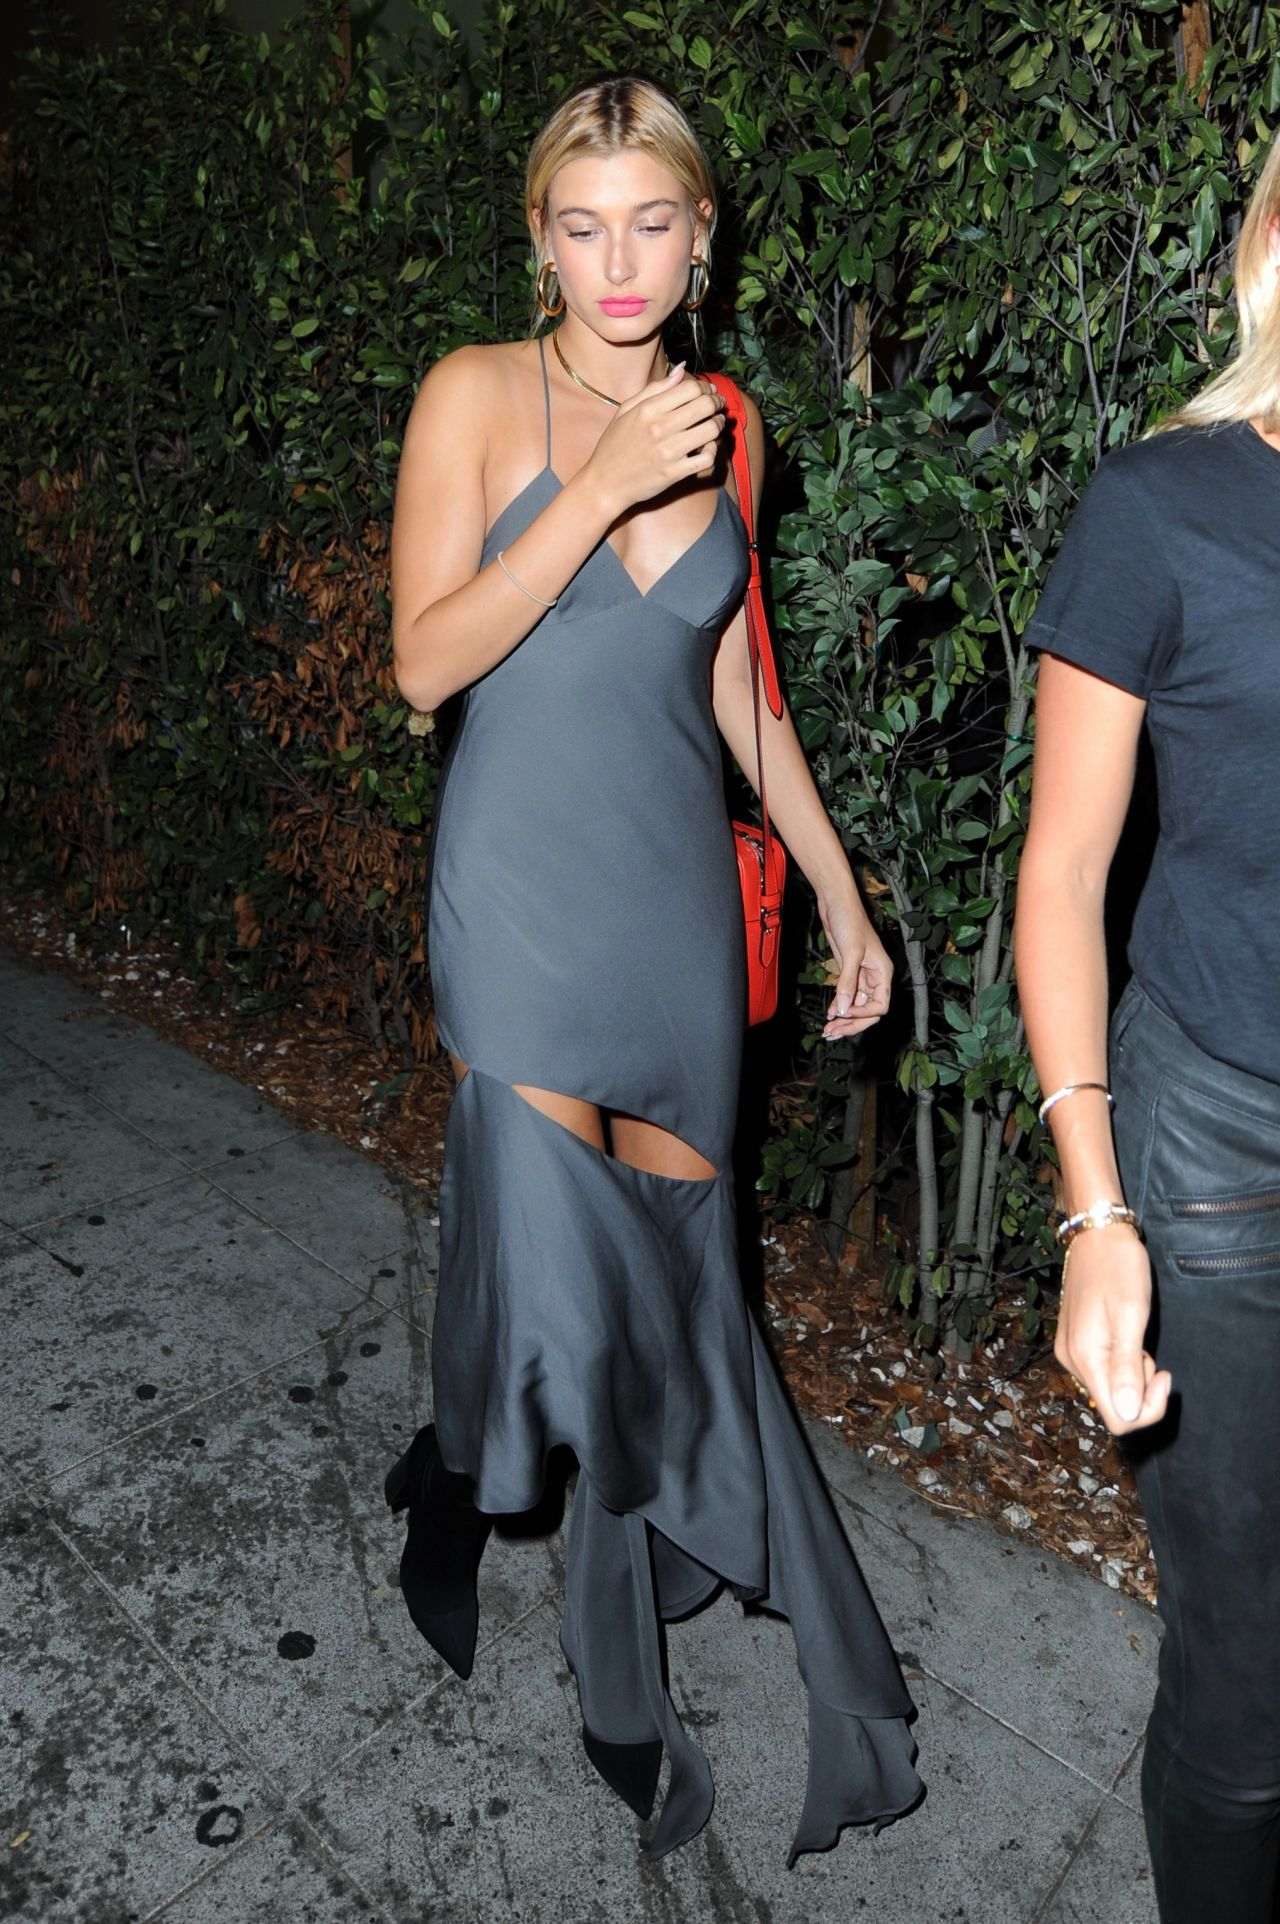 Hailey baldwin night out style leaving delilahs night club in west hollywood naked (38 photos), Is a cute Celebrites foto